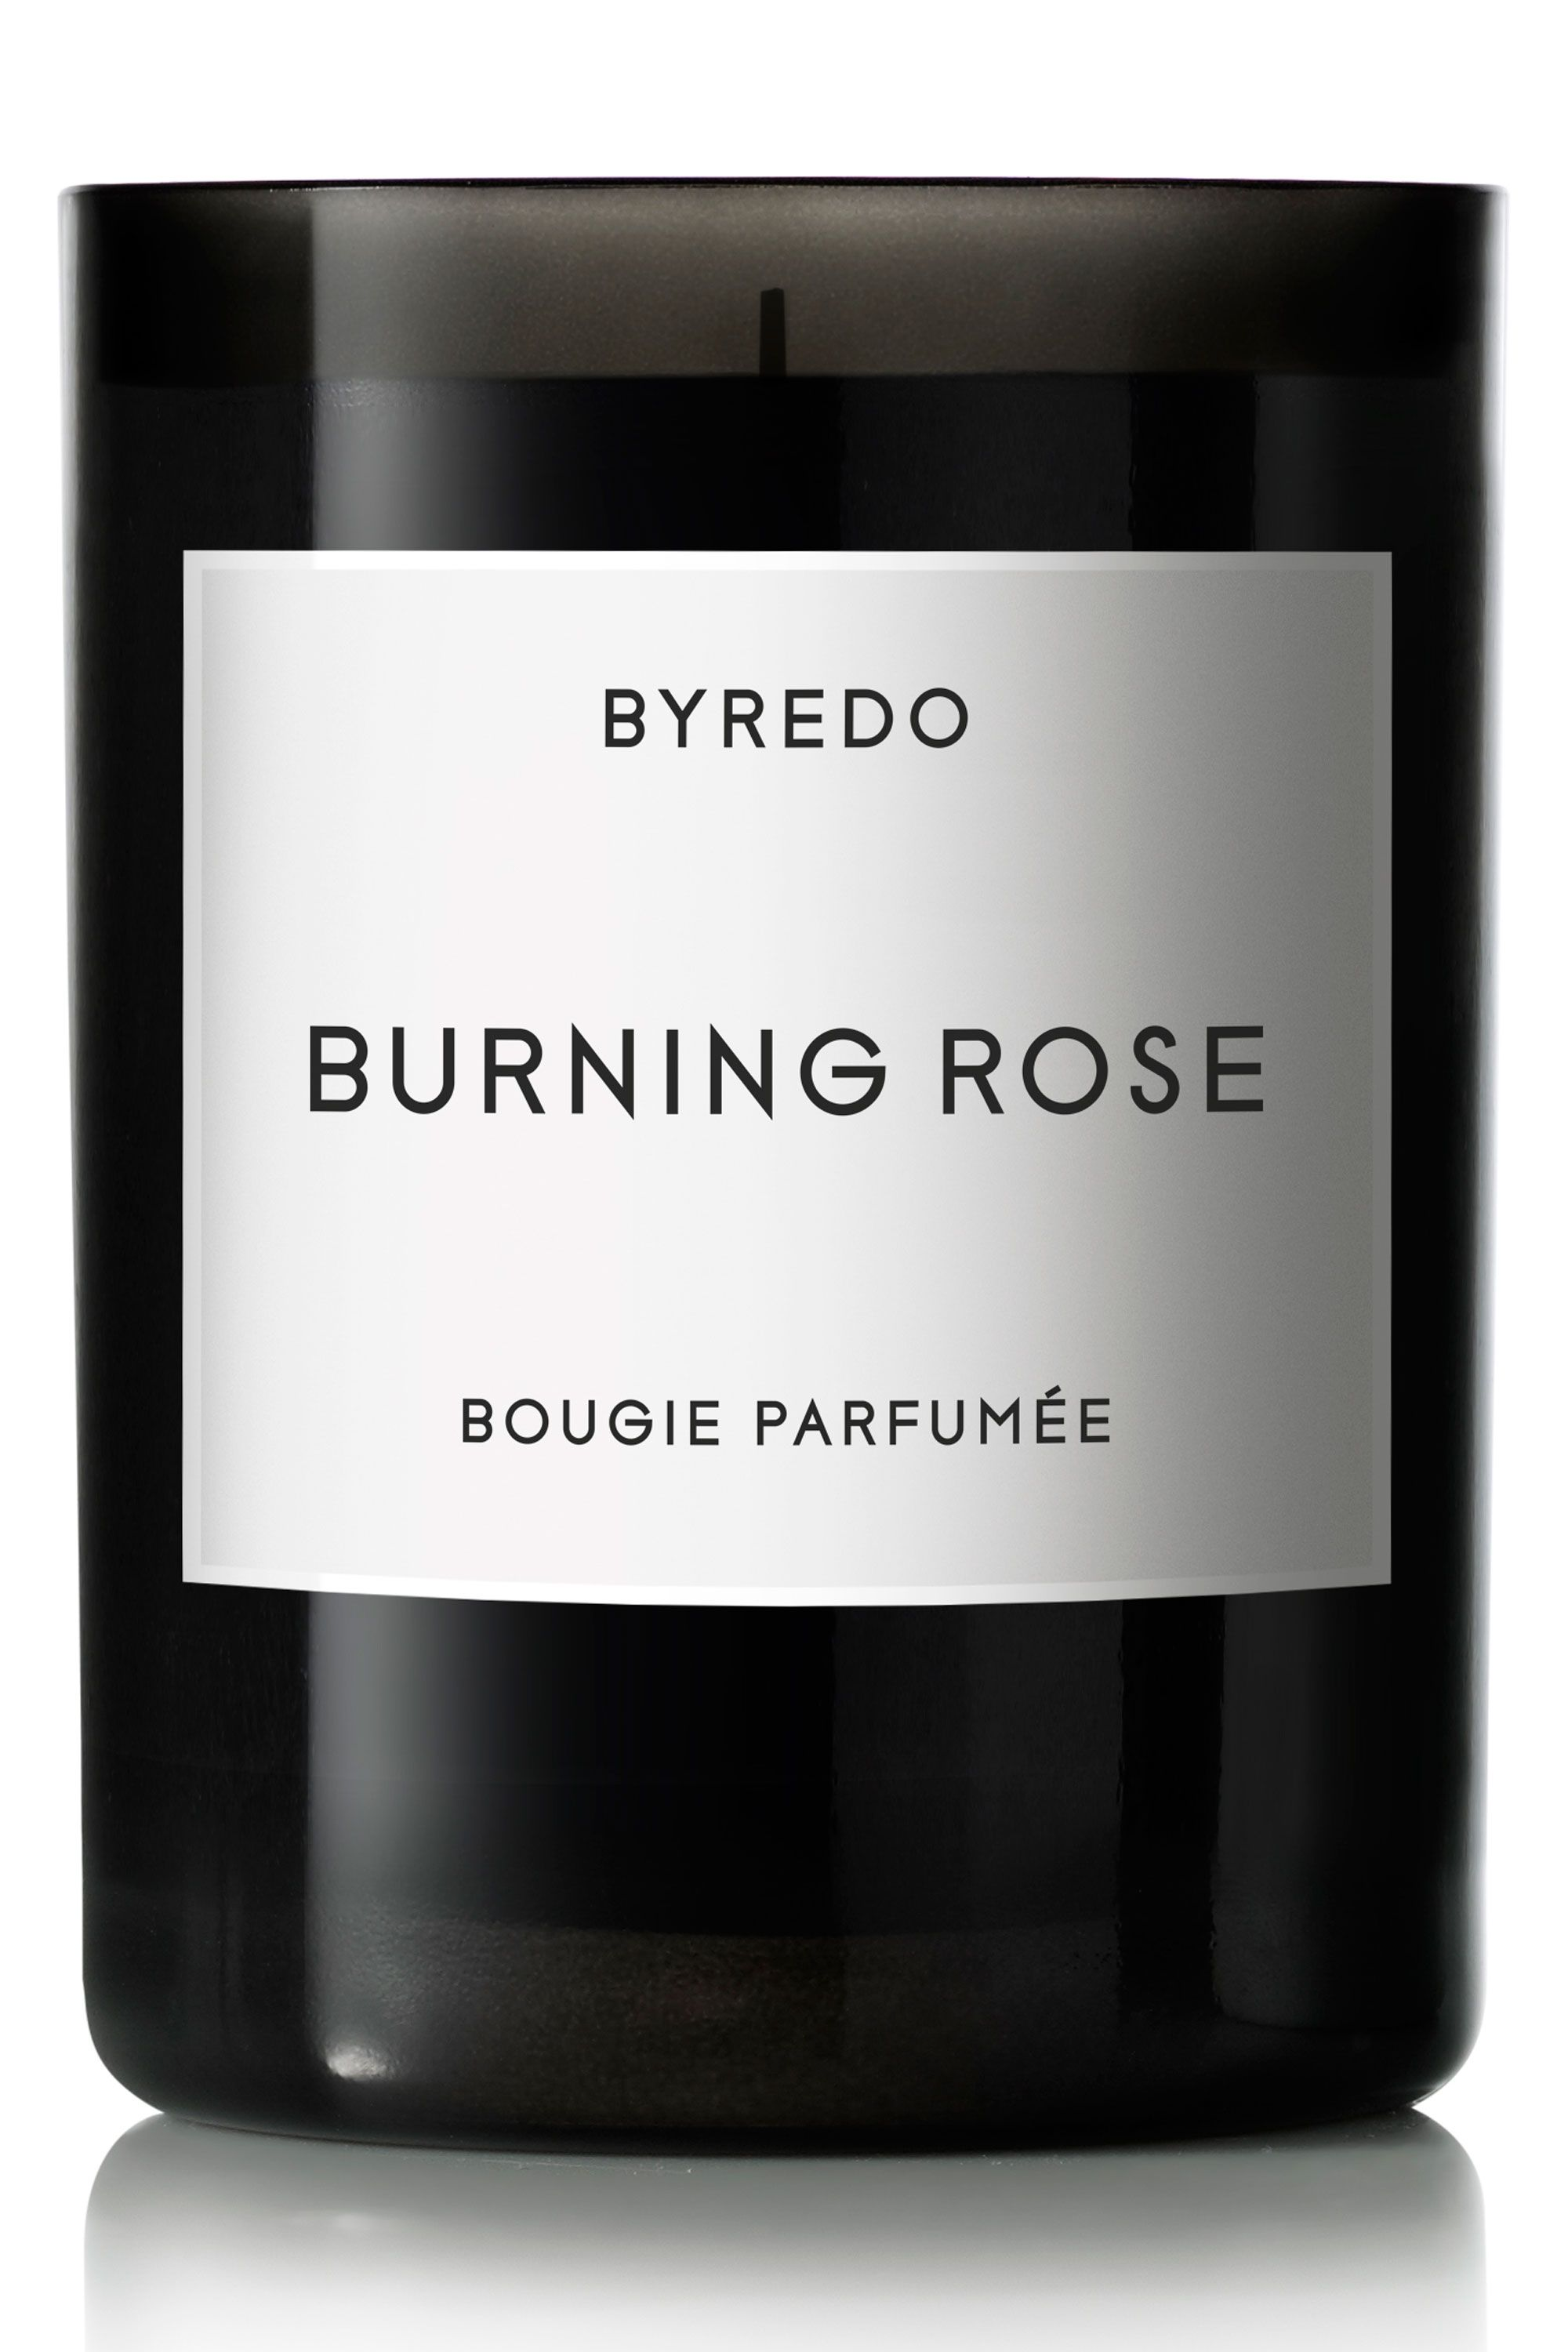 """The candle you want to light if you're trying to set the mood.<em>Byredo Burning Rose Candle, $80, <a target=""""_blank"""" href=""""http://www.barneys.com/Byredo-Burning-Rose-Candle-503931683.html?gclid=CPnb9Mvl8cUCFQQRHwodRqEApw"""">barneys.com</a>.</em>"""